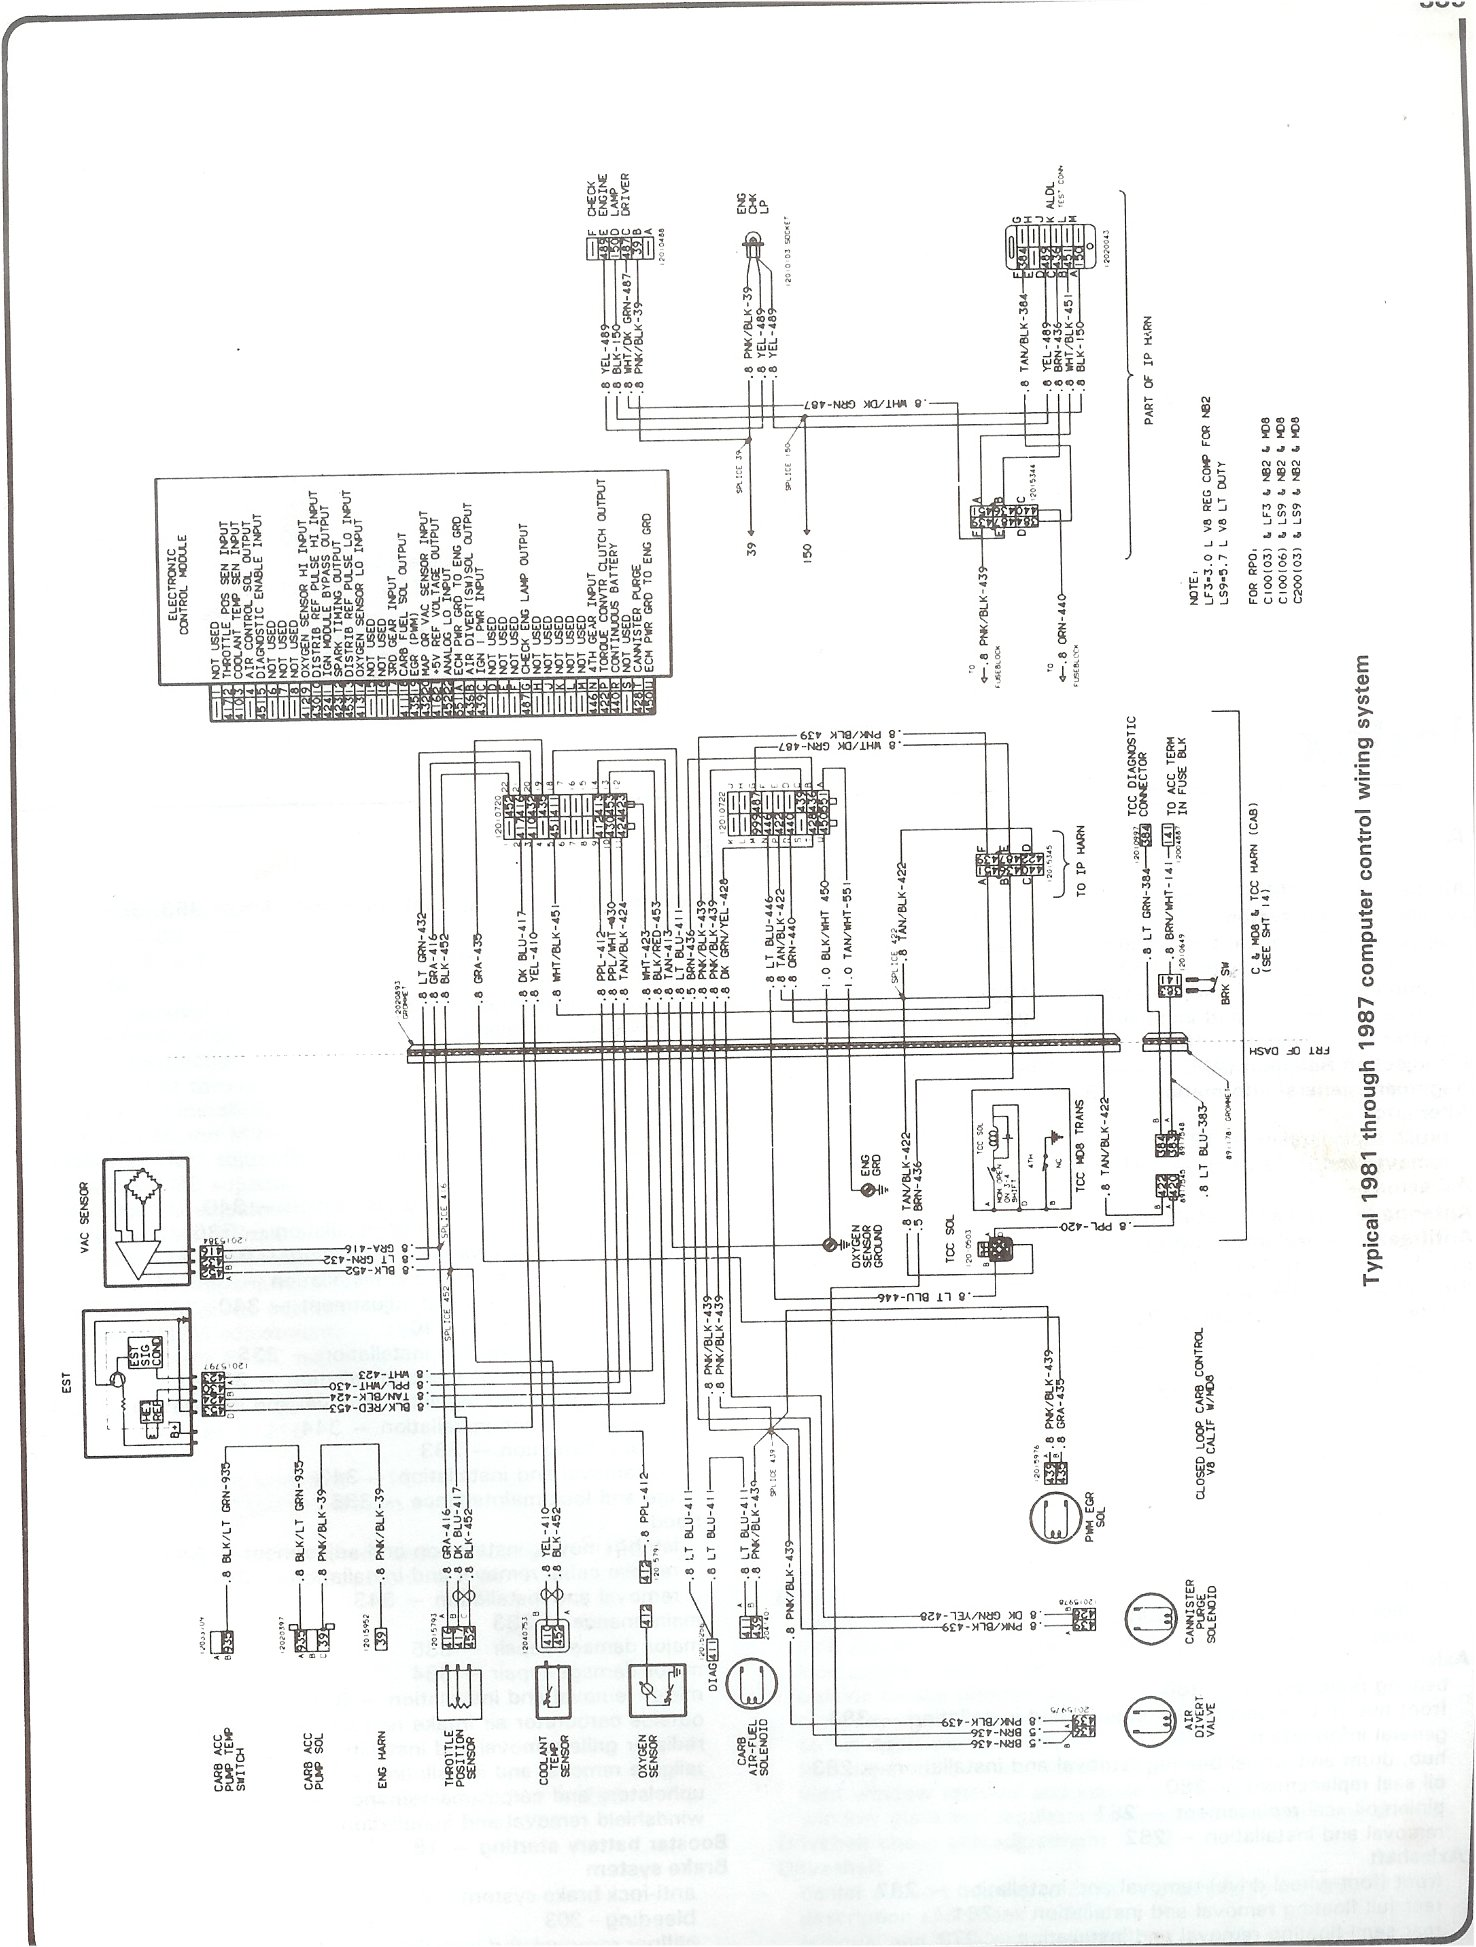 81 87_computer_control_wiring complete 73 87 wiring diagrams 84 chevy truck wiring harness at bayanpartner.co